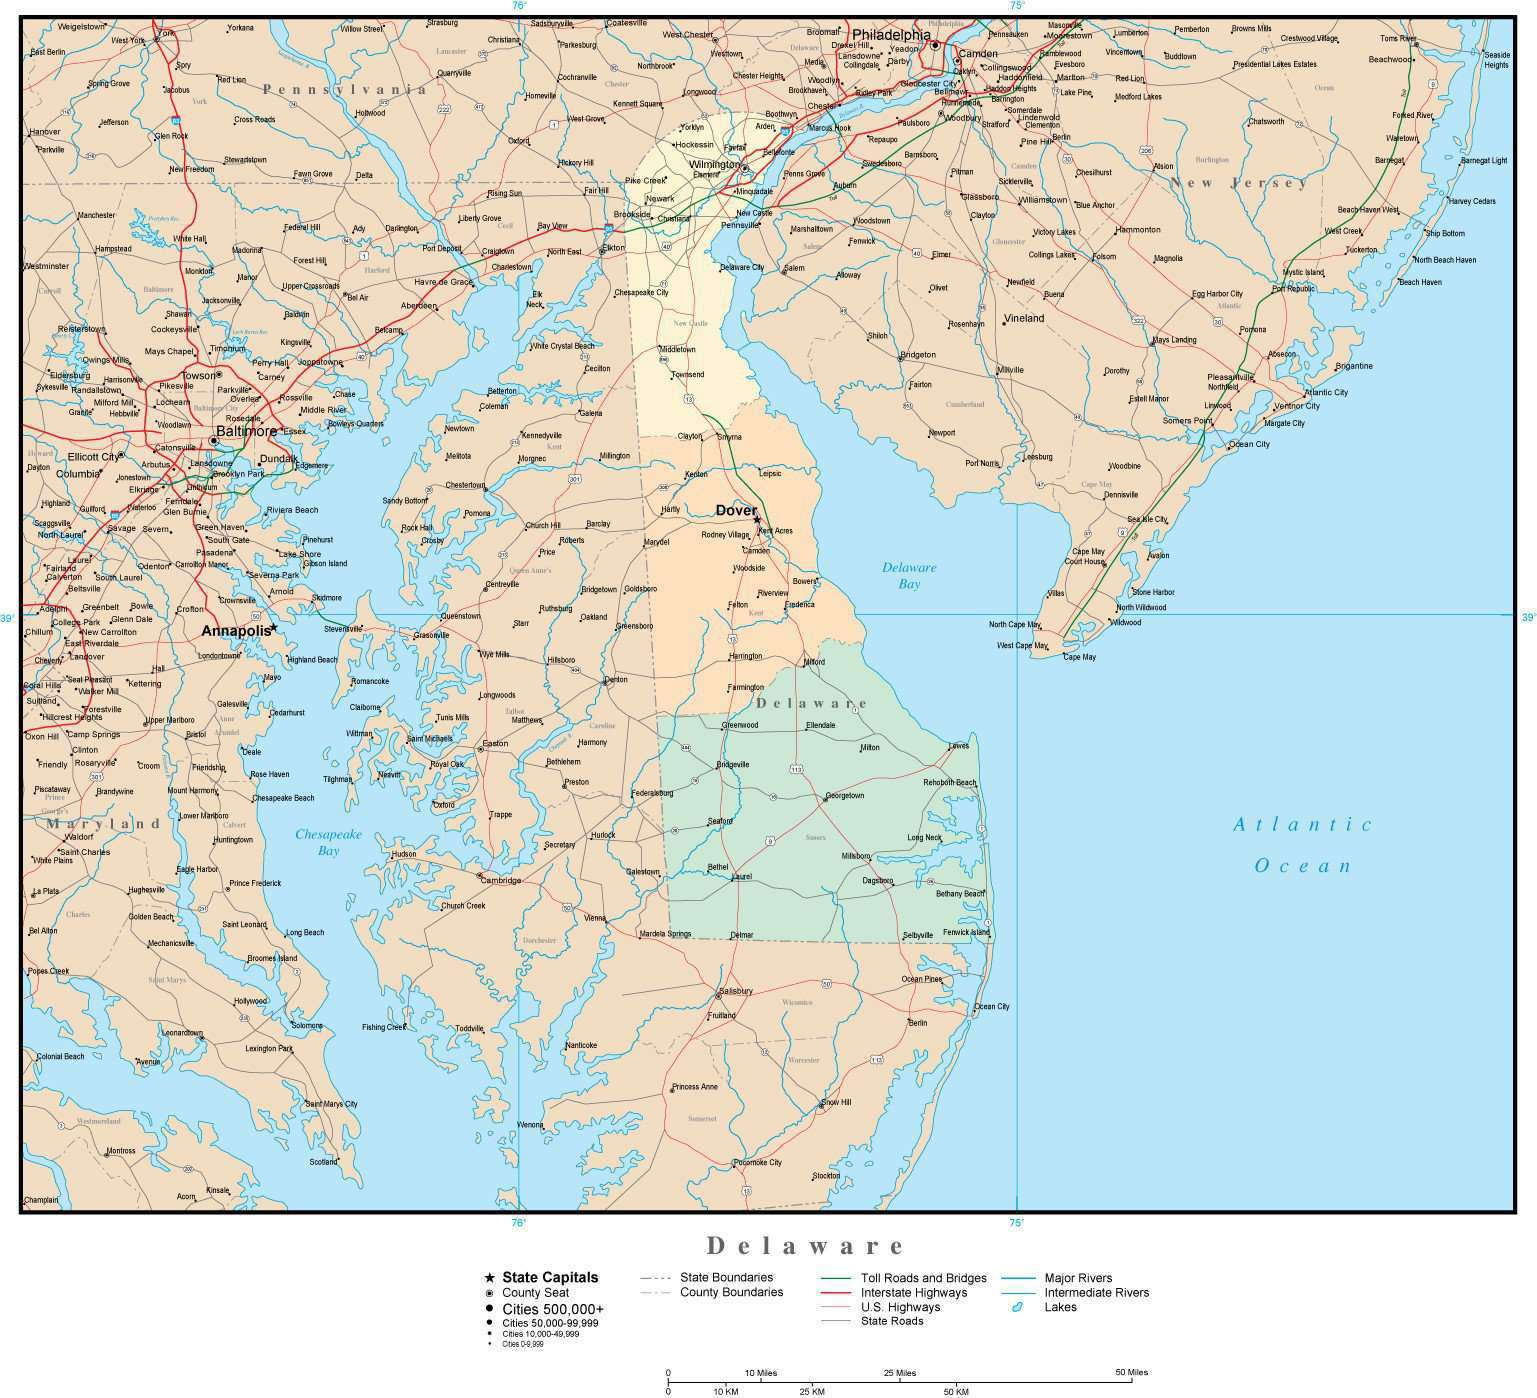 Delaware Map with Counties, Cities, County Seats, Major Roads, Rivers on most democratic states, map of ohio college locations, map of new york and surrounding areas, map of great lake states, map of delaware cities and towns, map of delaware and dc, map of delaware and pa, map of east malaysia, west virginia and surrounding states, map of delaware and baltimore, map of jay ny, kentucky map with surrounding states, arizona surrounding states, map of delaware and virginia, map of delaware and north carolina, map of del, map of new jersey and delaware, map of baltimore ohio, map of california with scale, map of great lakes and surrounding area,